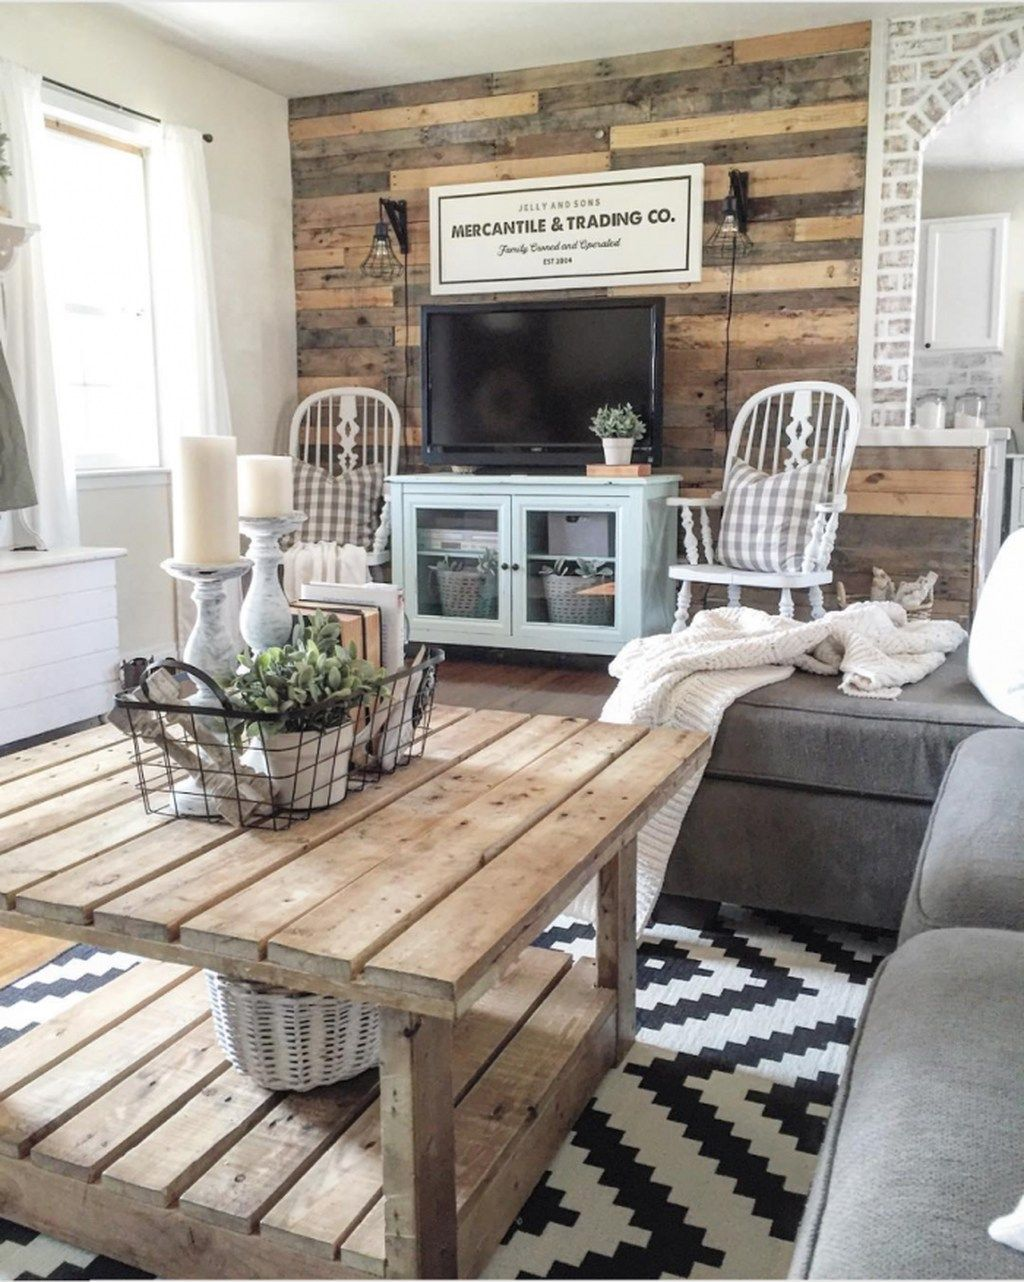 46 The Best Living Room Decoration Ideas With Rustic Farmhouse Style - Trendehouse